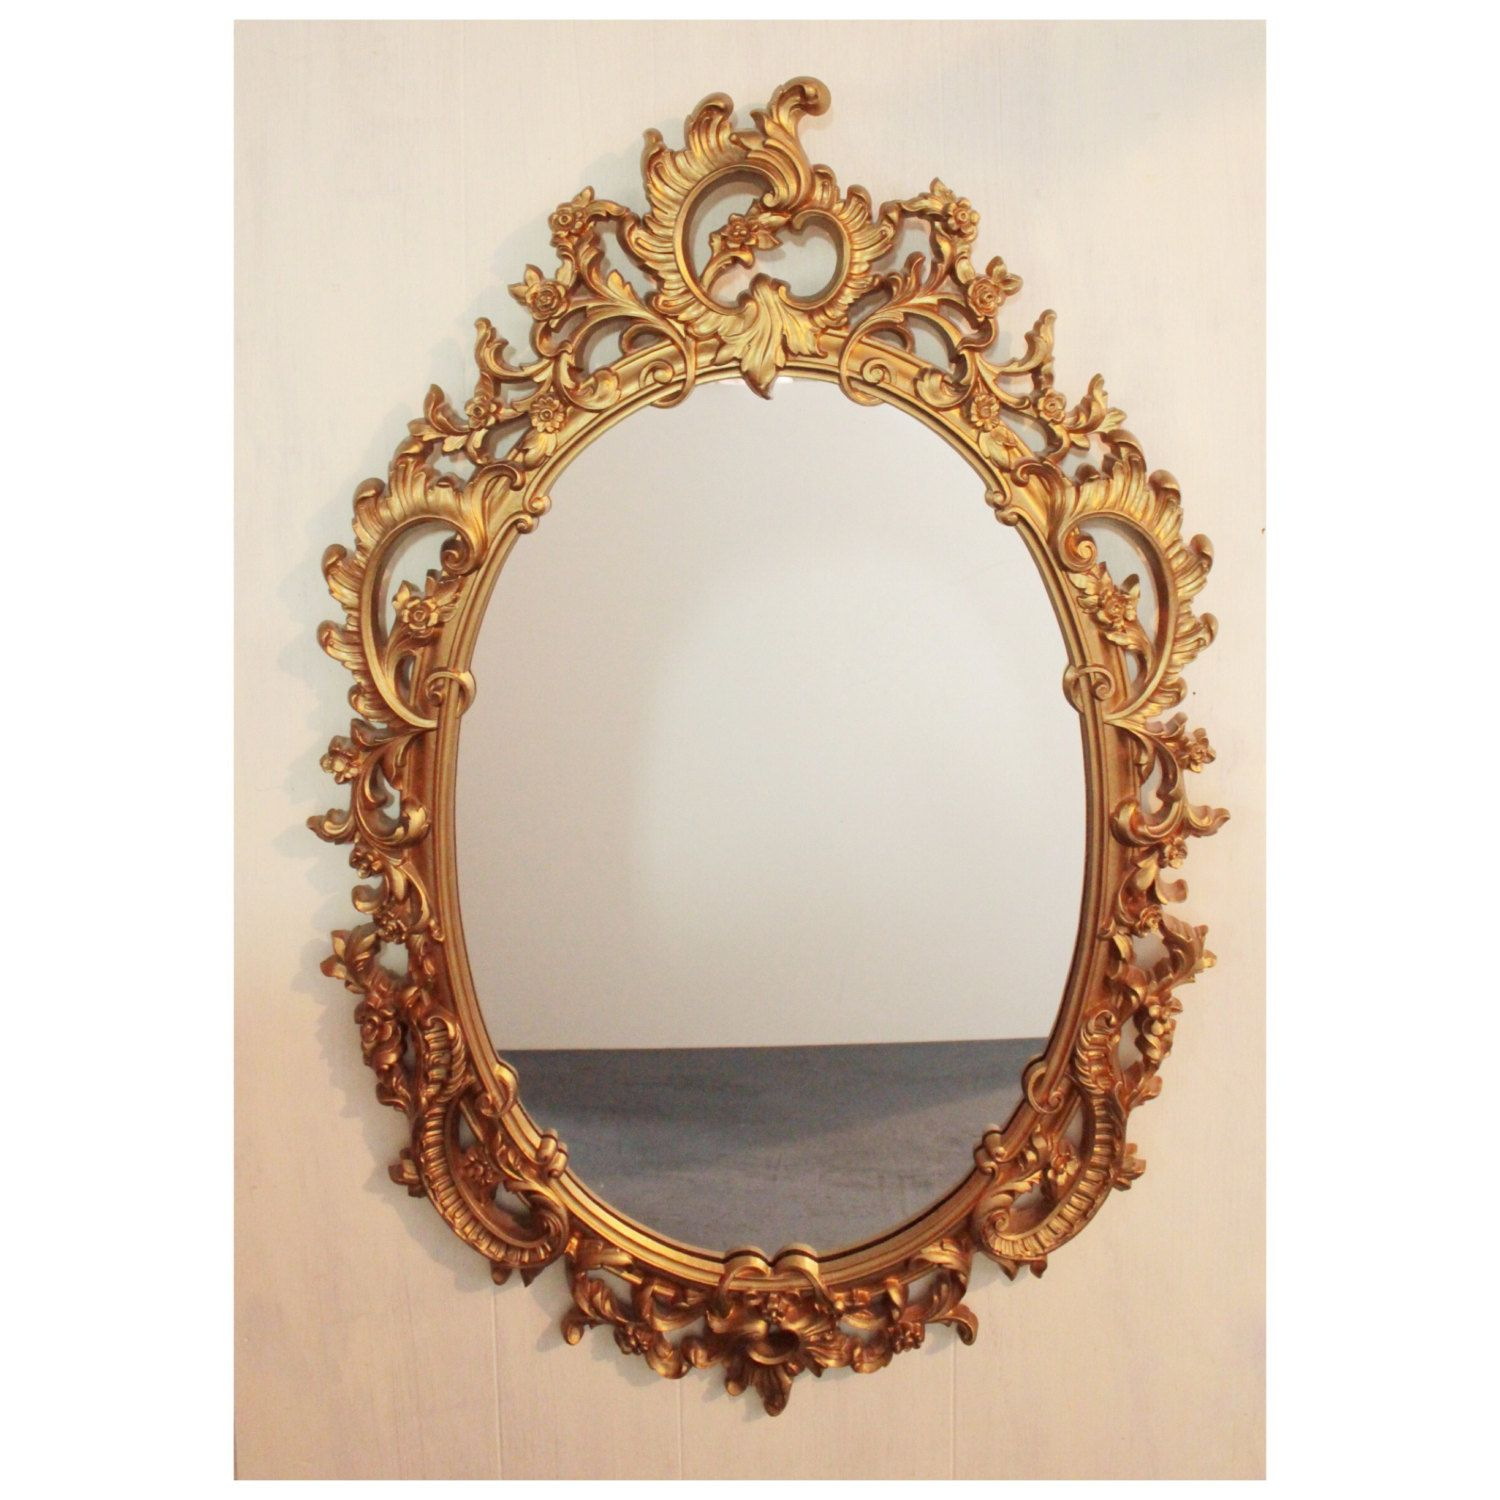 Large gold mid century wall mirror ornate oval framed mirror large gold mid century wall mirror ornate oval framed mirror hollywood regency by ninedoorsvintage amipublicfo Image collections